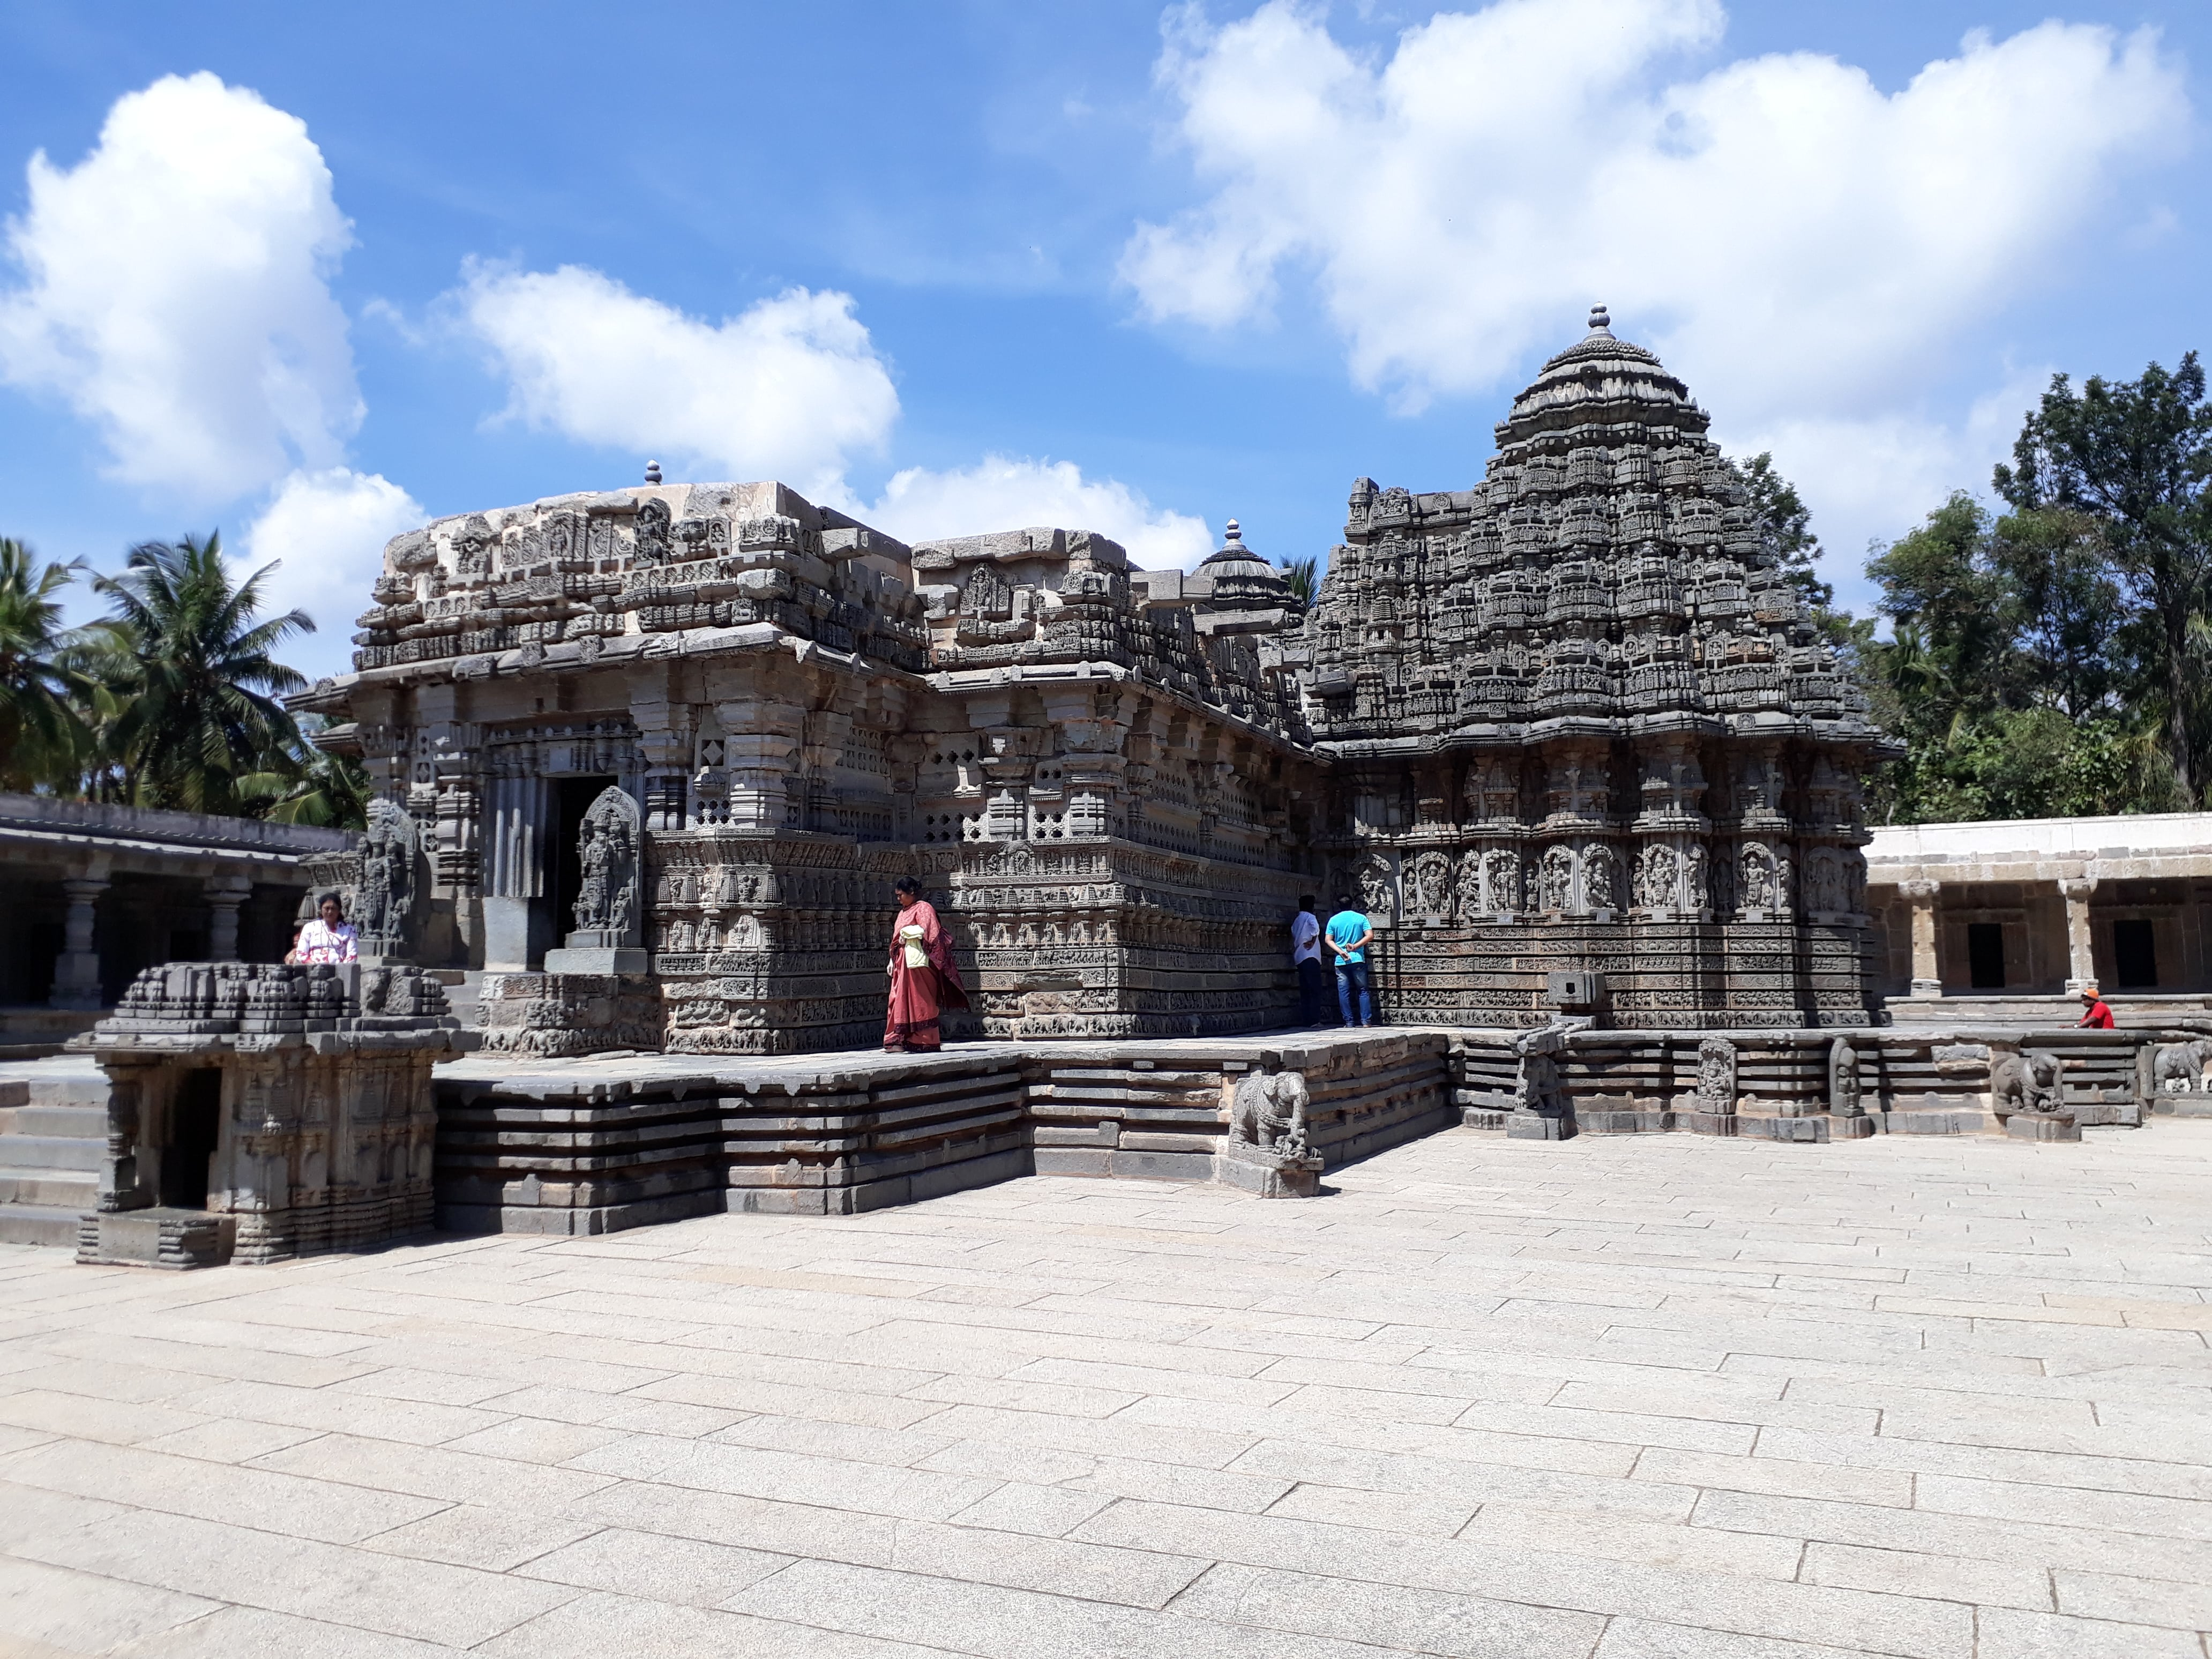 The Chennakesava temple, Somnathpura